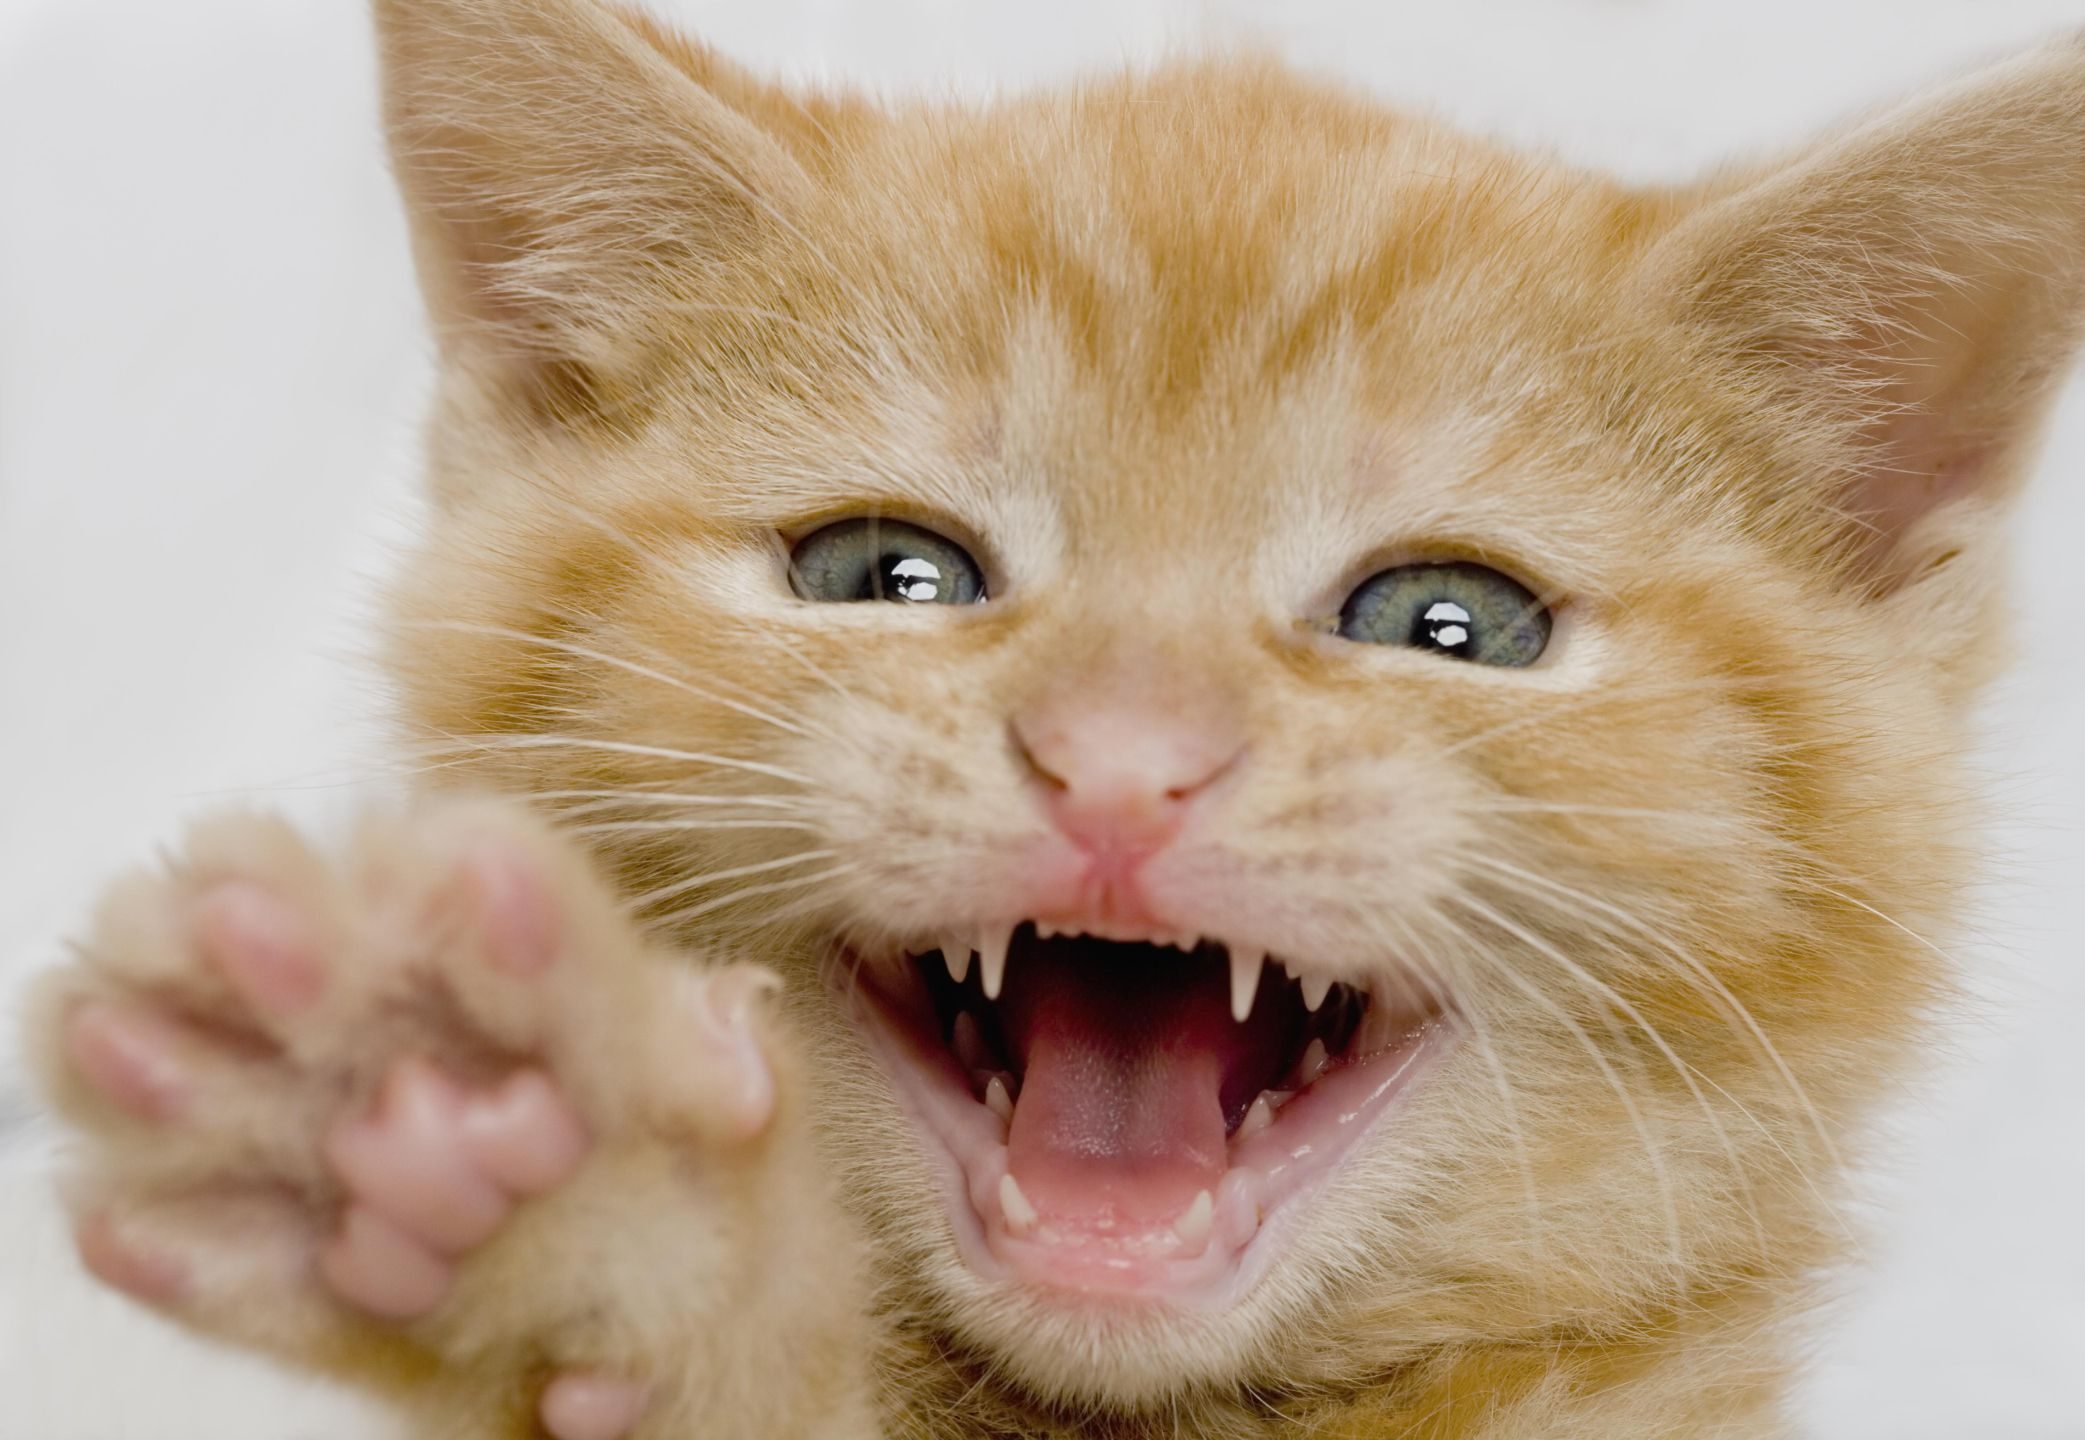 When Do Puppies And Kittens Lose Their Baby Teeth?